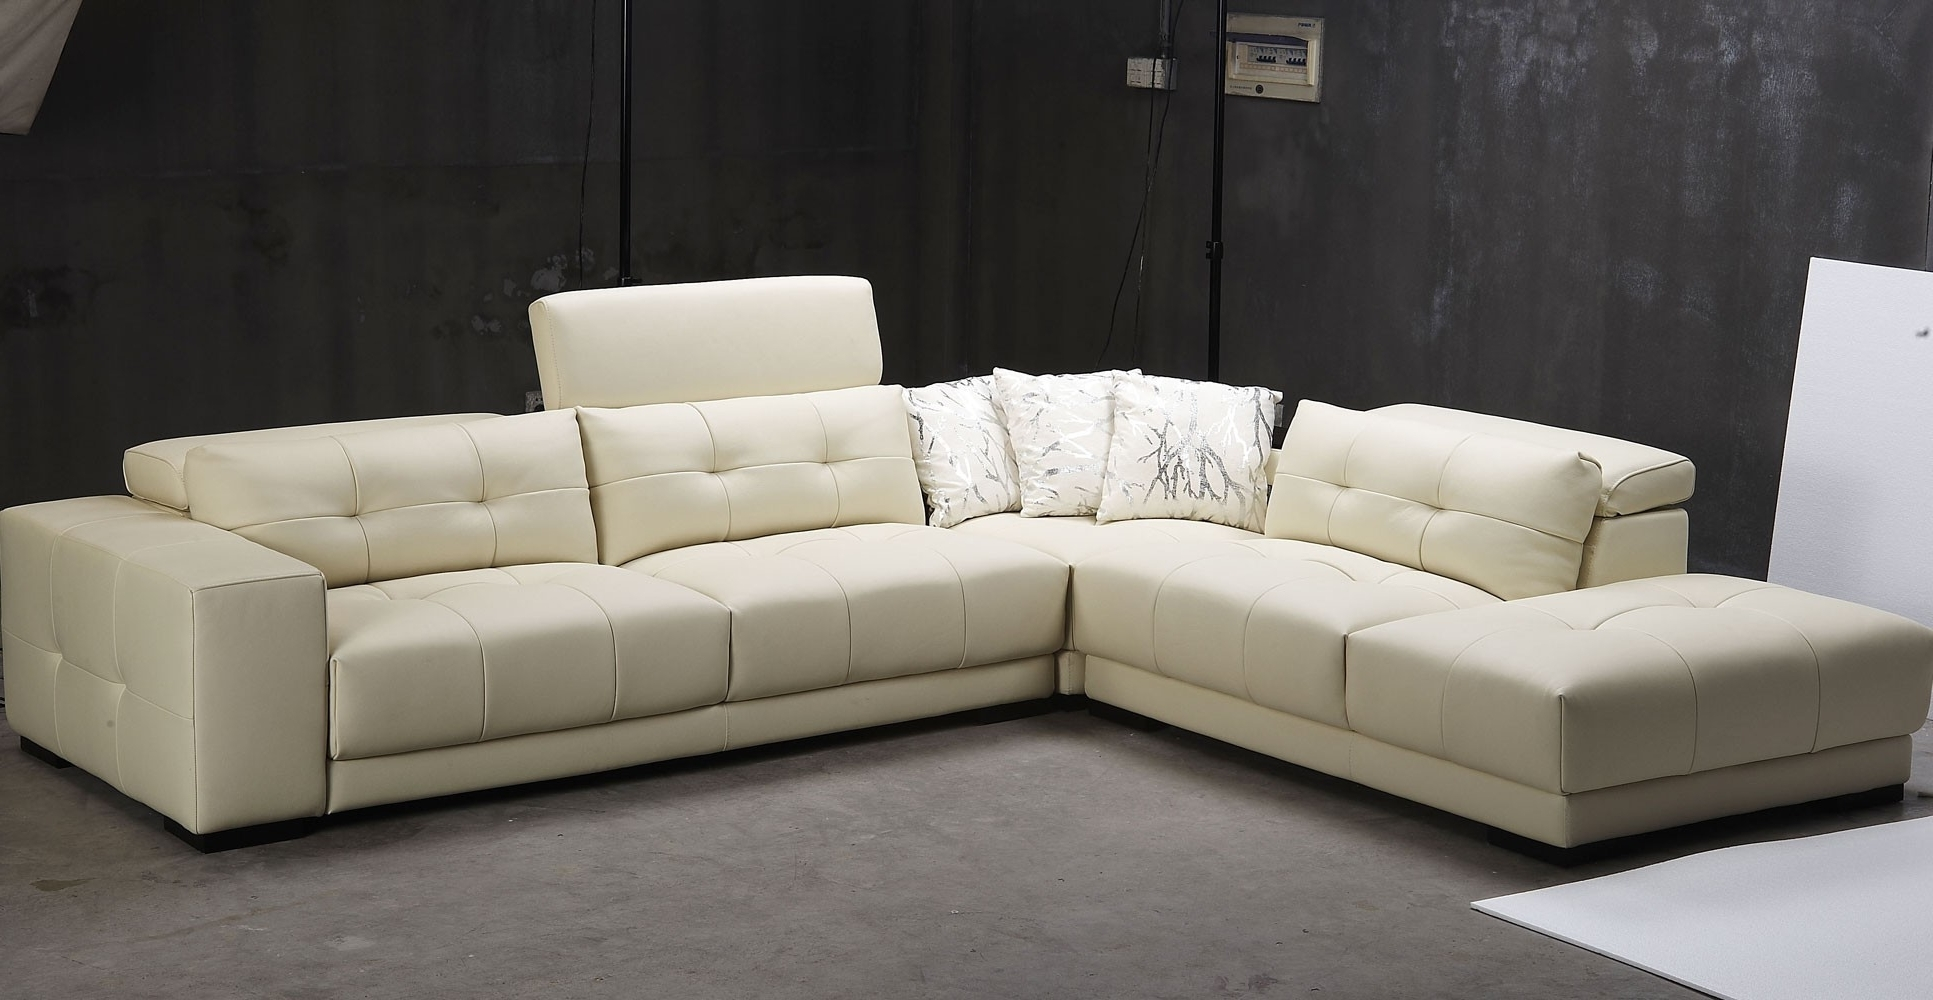 Jedd Fabric Reclining Sectional Sofas With Regard To 2018 Jedd Fabric Reclining Sectional Sofa Reviews Sofas Contemporary (View 3 of 15)